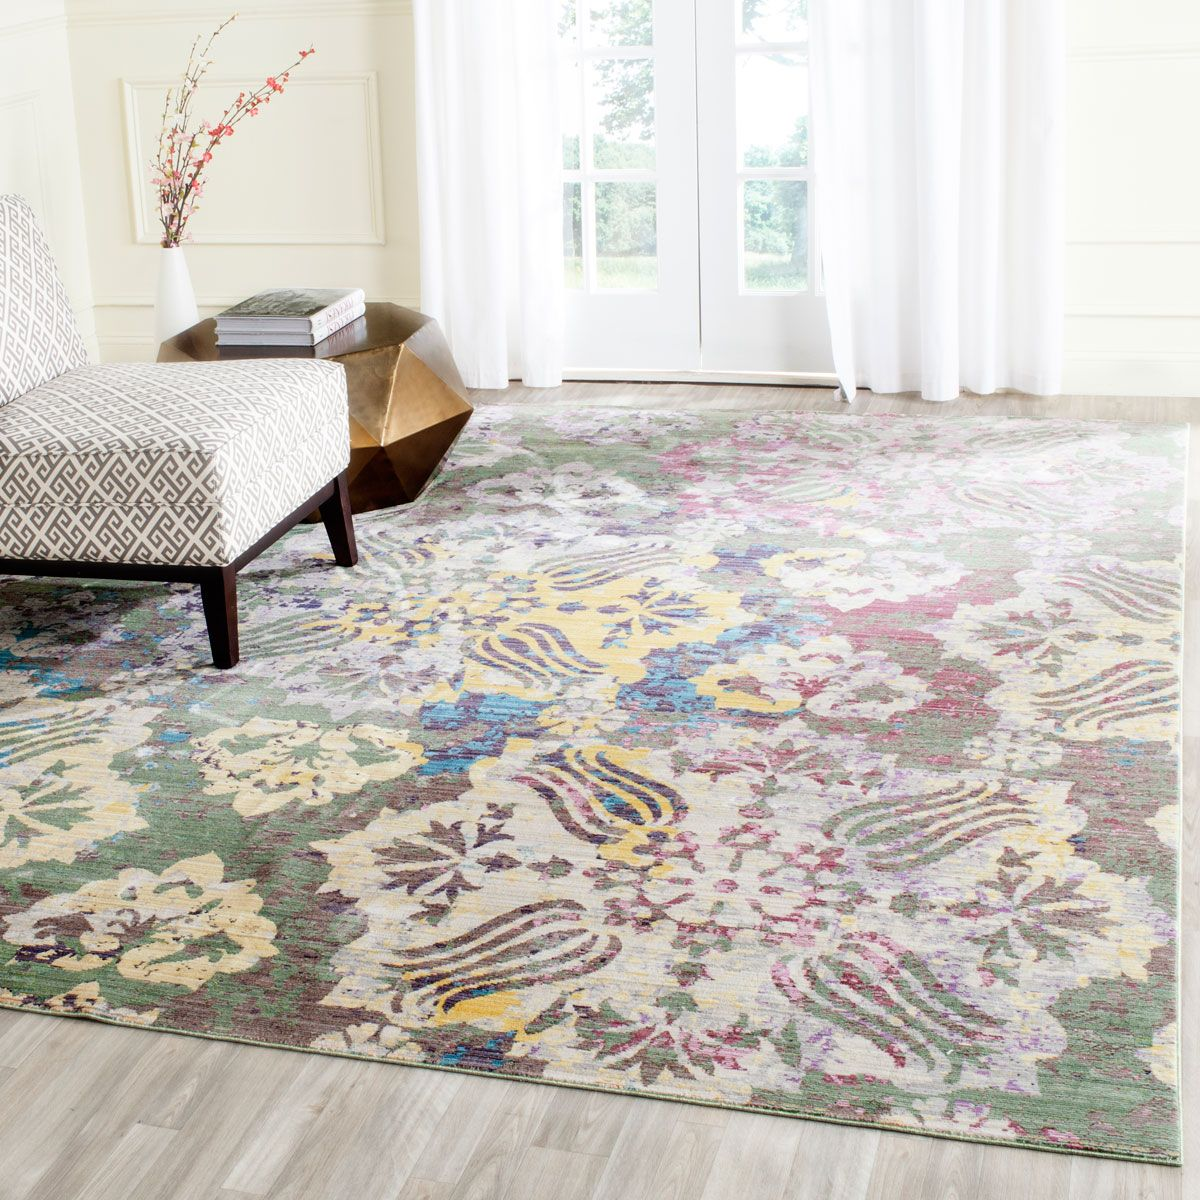 VAL215K Rug from Valencia collection.  From brilliantly colored designs inspired by abstract art to classic Persian motifs supercharged with a contemporary palette, the fashion-right Valencia collection is machine loomed in an unusually fine cross weave to create a lustrous heirloom patina. Made in Turkey by Safavieh, each Valencia rug comes with serged edges for a beautifully finished designer look.   The Valencia collection by Safavieh is machine loomed of polyester yarn in an unusually…